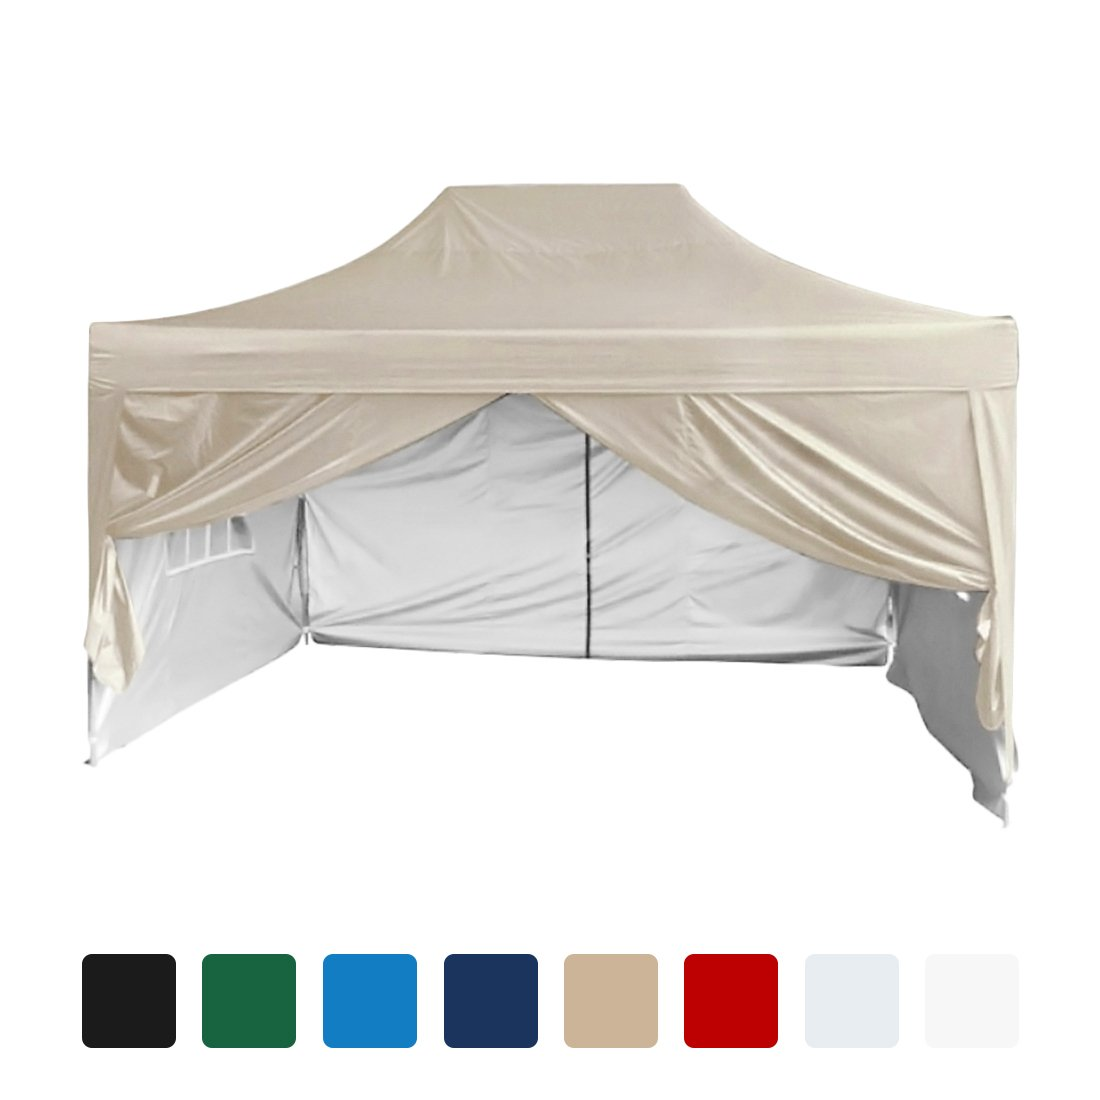 Quictent Silvox Waterproof 10'x15' EZ Pop Up Canopy Gazebo Party Tent Portable Pyramid-roofed 100% Waterproof-8 colors (Beige)